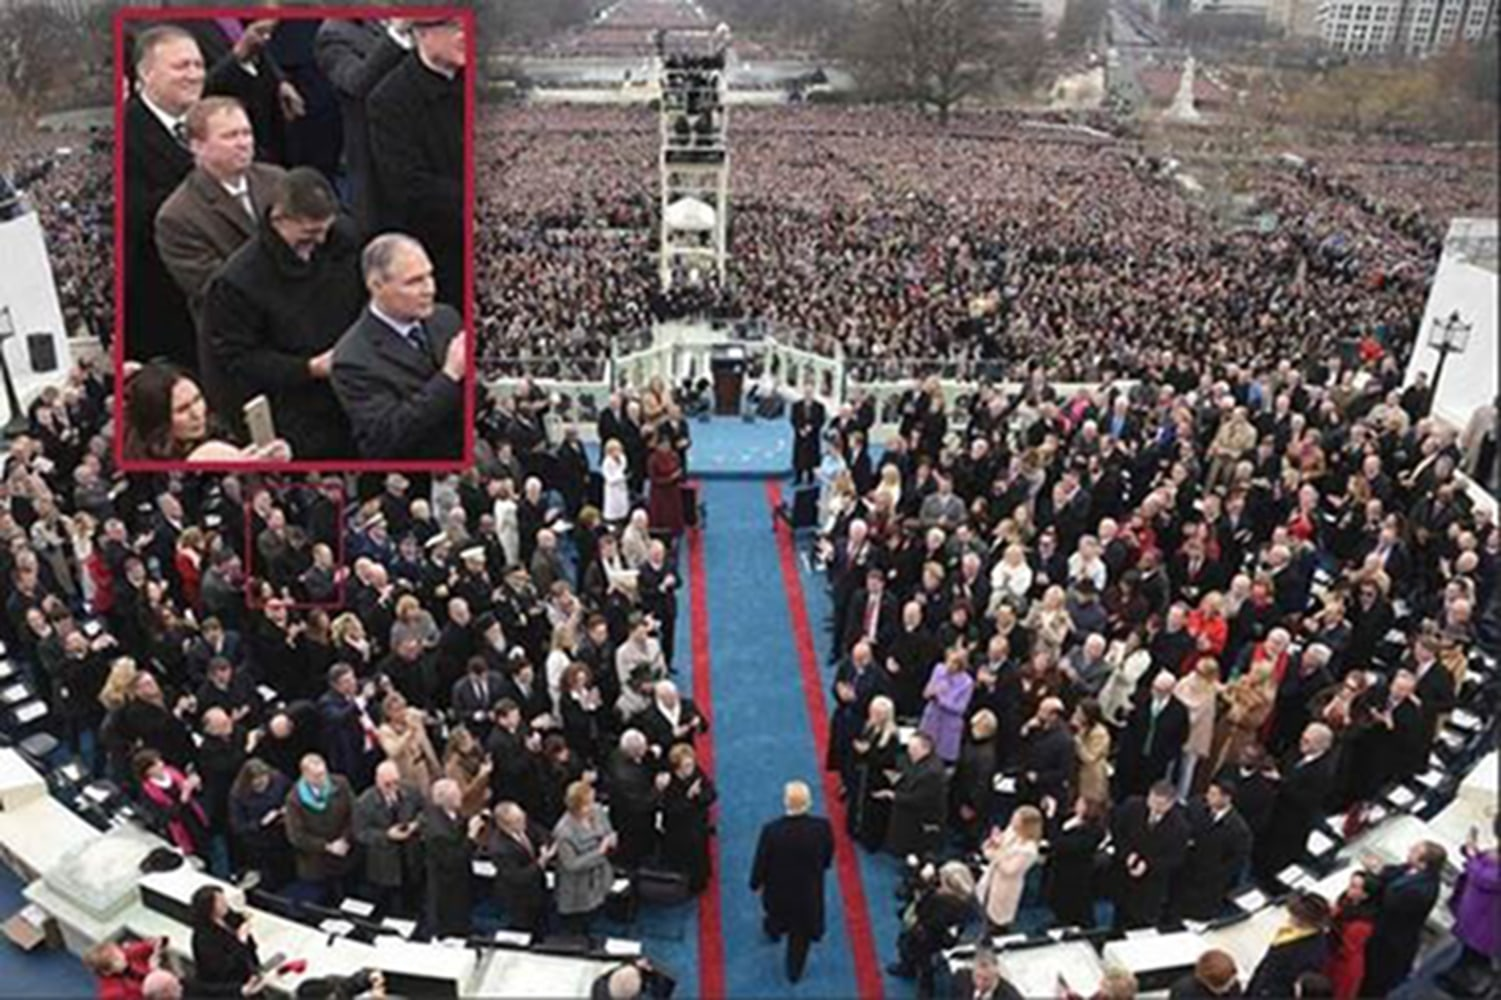 Image Michael Flynn appears to look at his phone during President Trump's inauguration ceremony